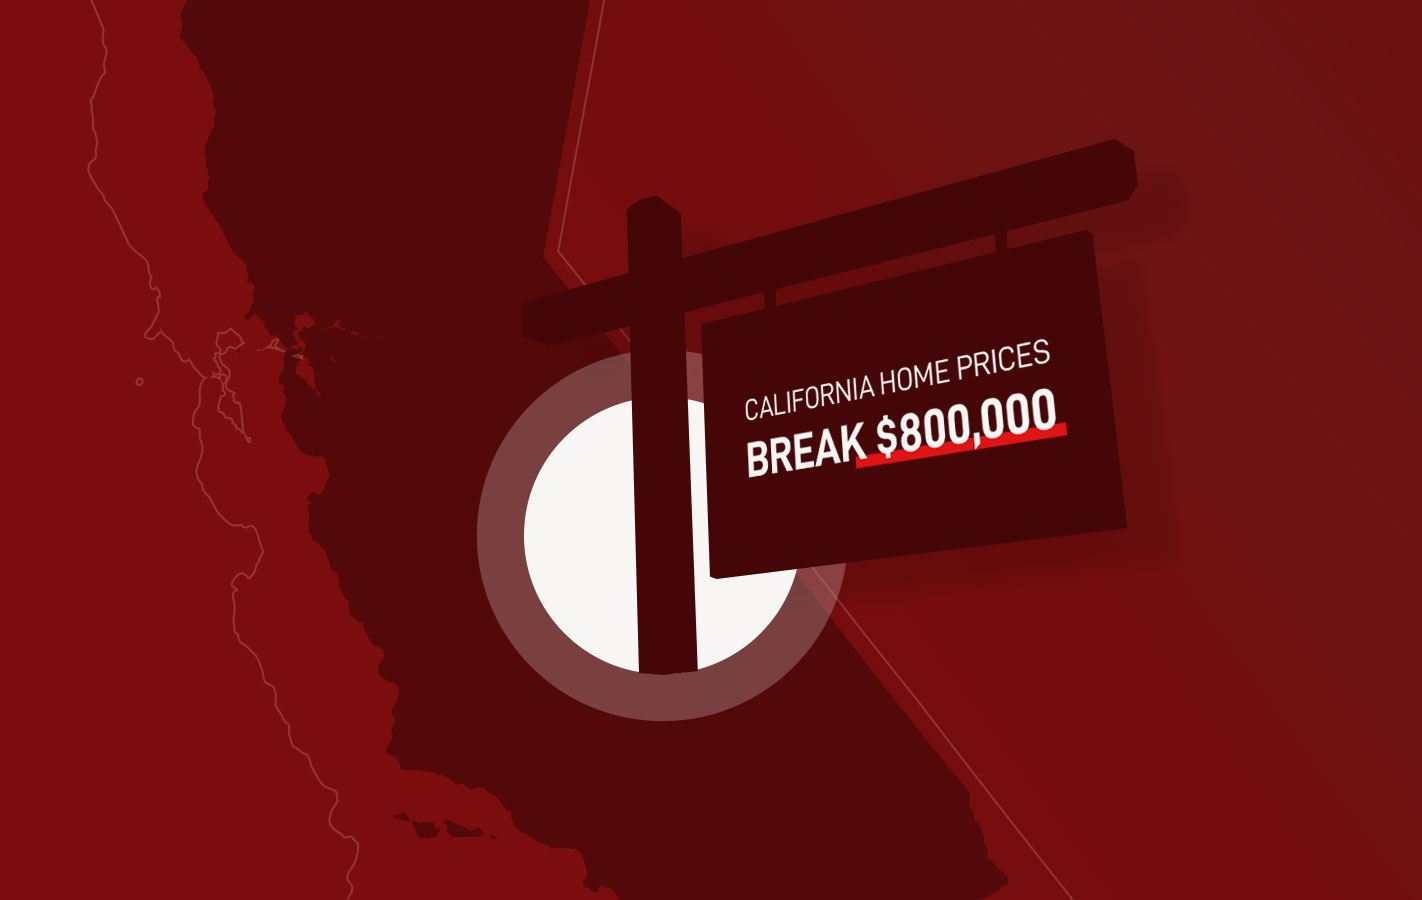 Margins-and-Cash-Flow: California Home Prices break $800,000 for the first time